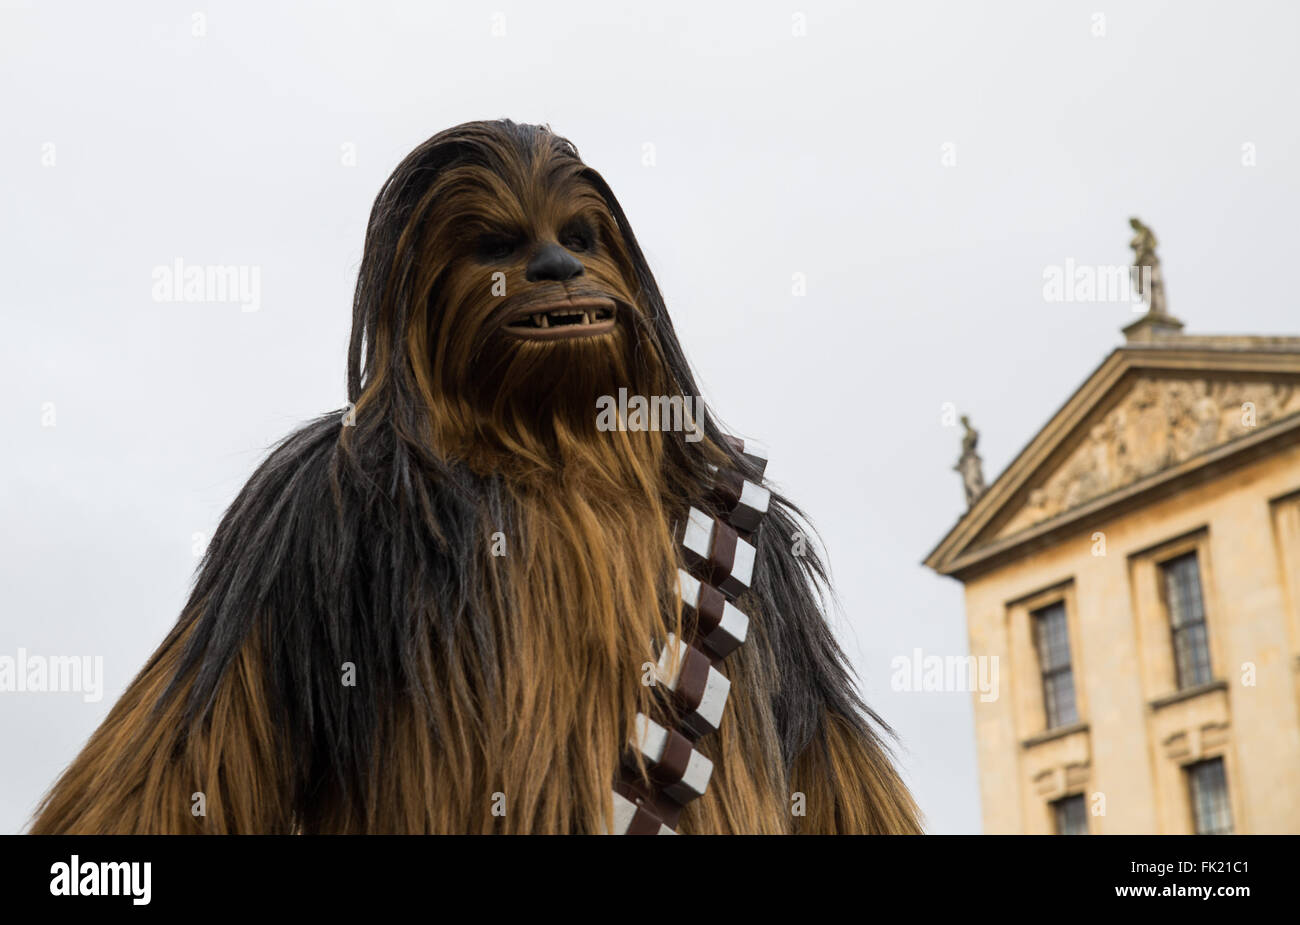 Oxford, UK. 5th March, 2016. Chewbacca cosplayer at the First Comic Con in Oxford. Credit: Pete Lusabia/Alamy live - Stock Image